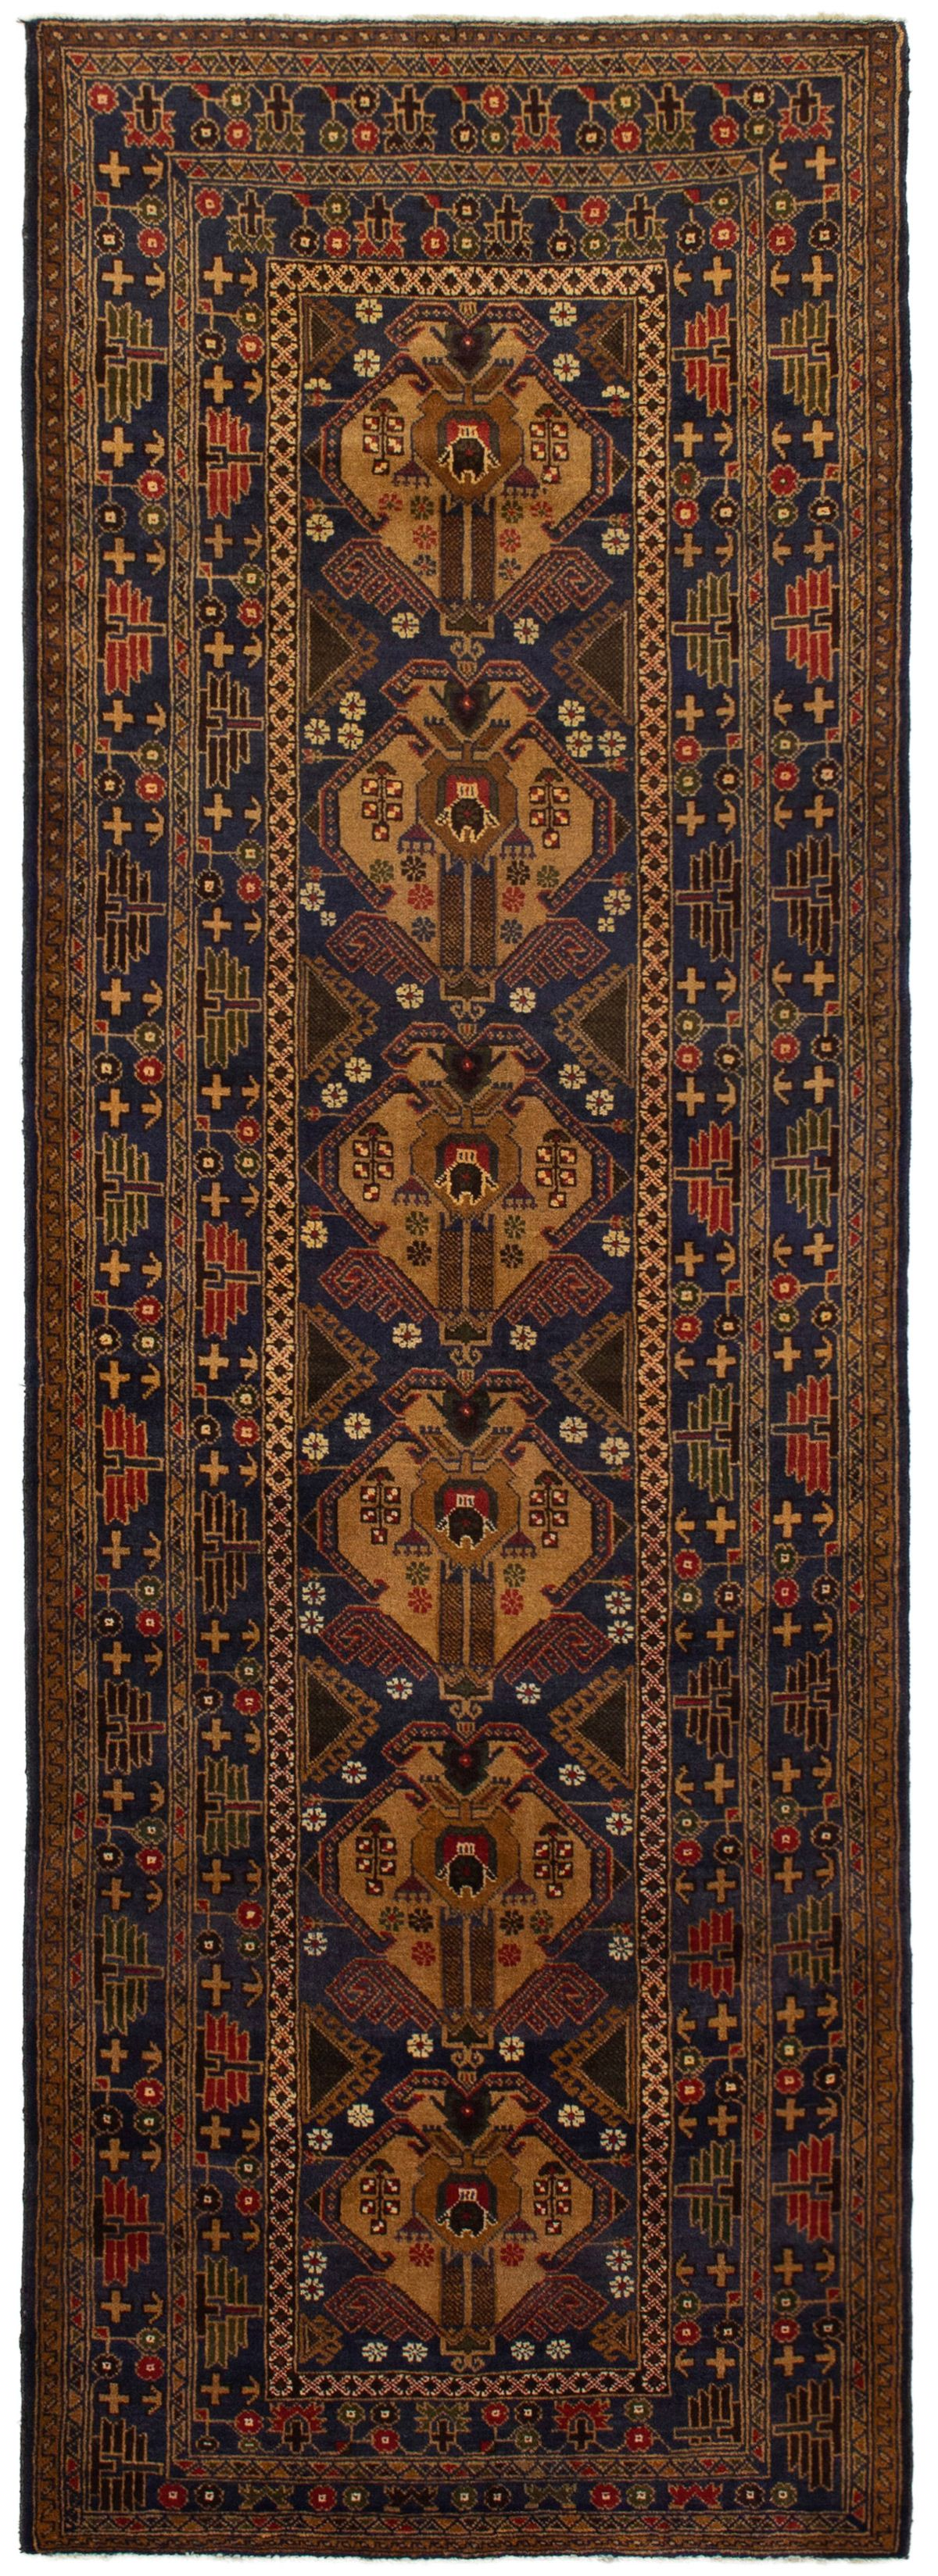 """Hand-knotted Rizbaft Navy Blue Wool Rug 3'2"""" x 9'2"""" Size: 3'2"""" x 9'2"""""""